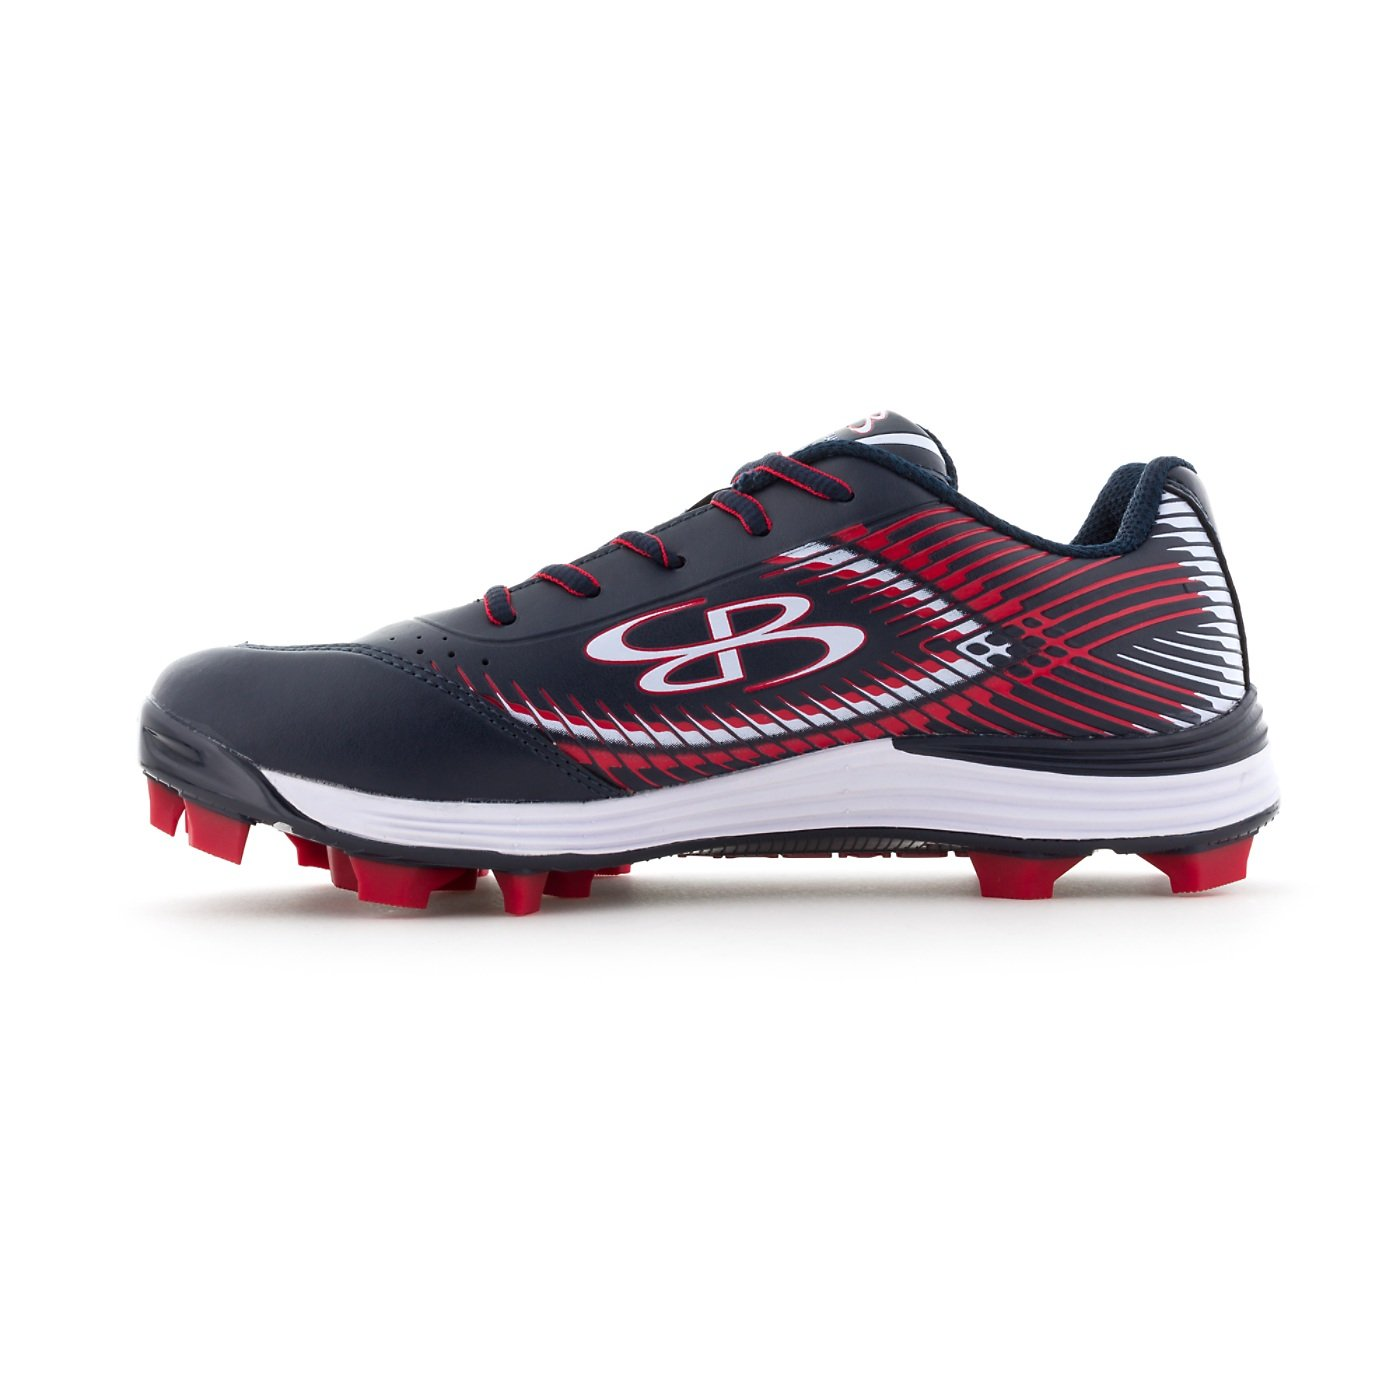 6053d88b73c Boombah Women s Frenzy Molded Cleats - 13 Color Options - Multiple Sizes  larger image